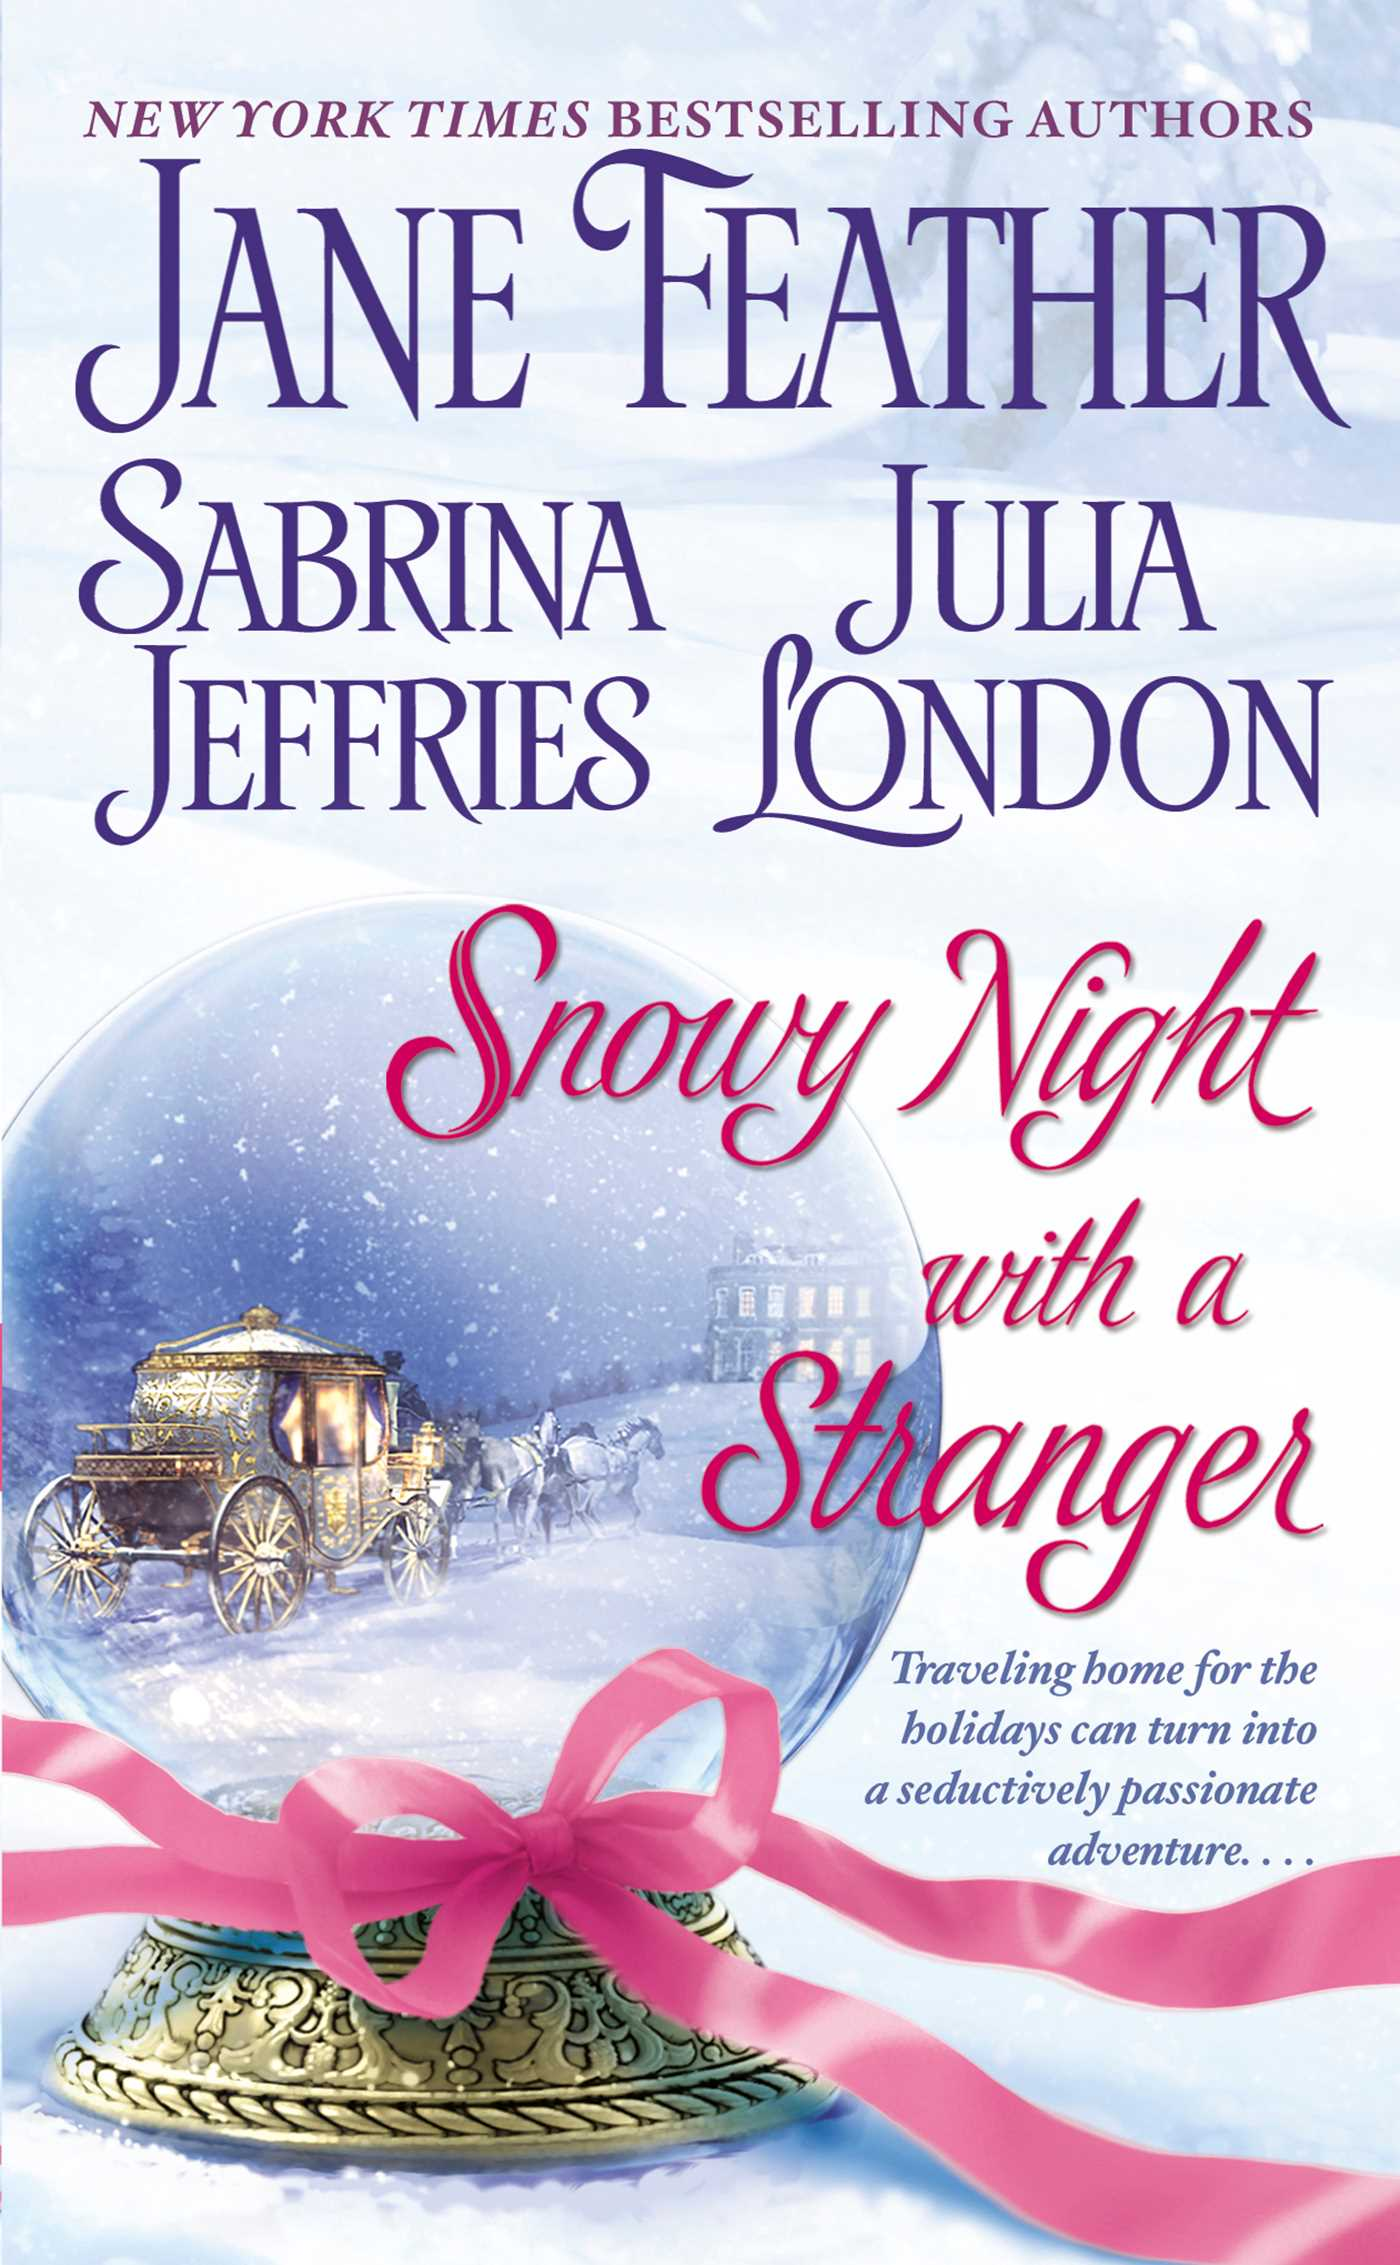 Snowy-night-with-a-stranger-9781416578833_hr